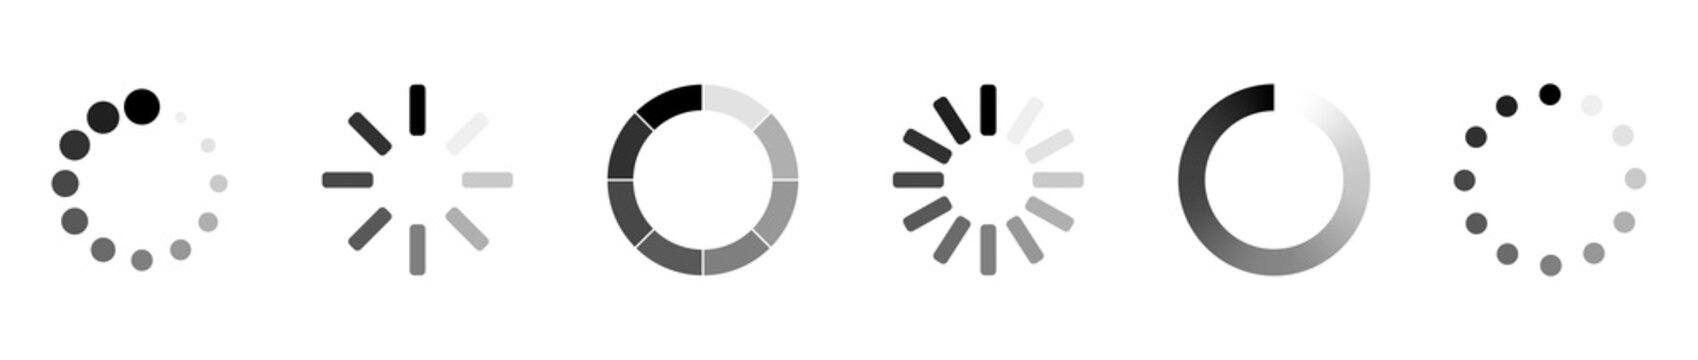 Loading icons. Load. Load bar icons. Set of loading icon in a row, isolated on white background. Eps10